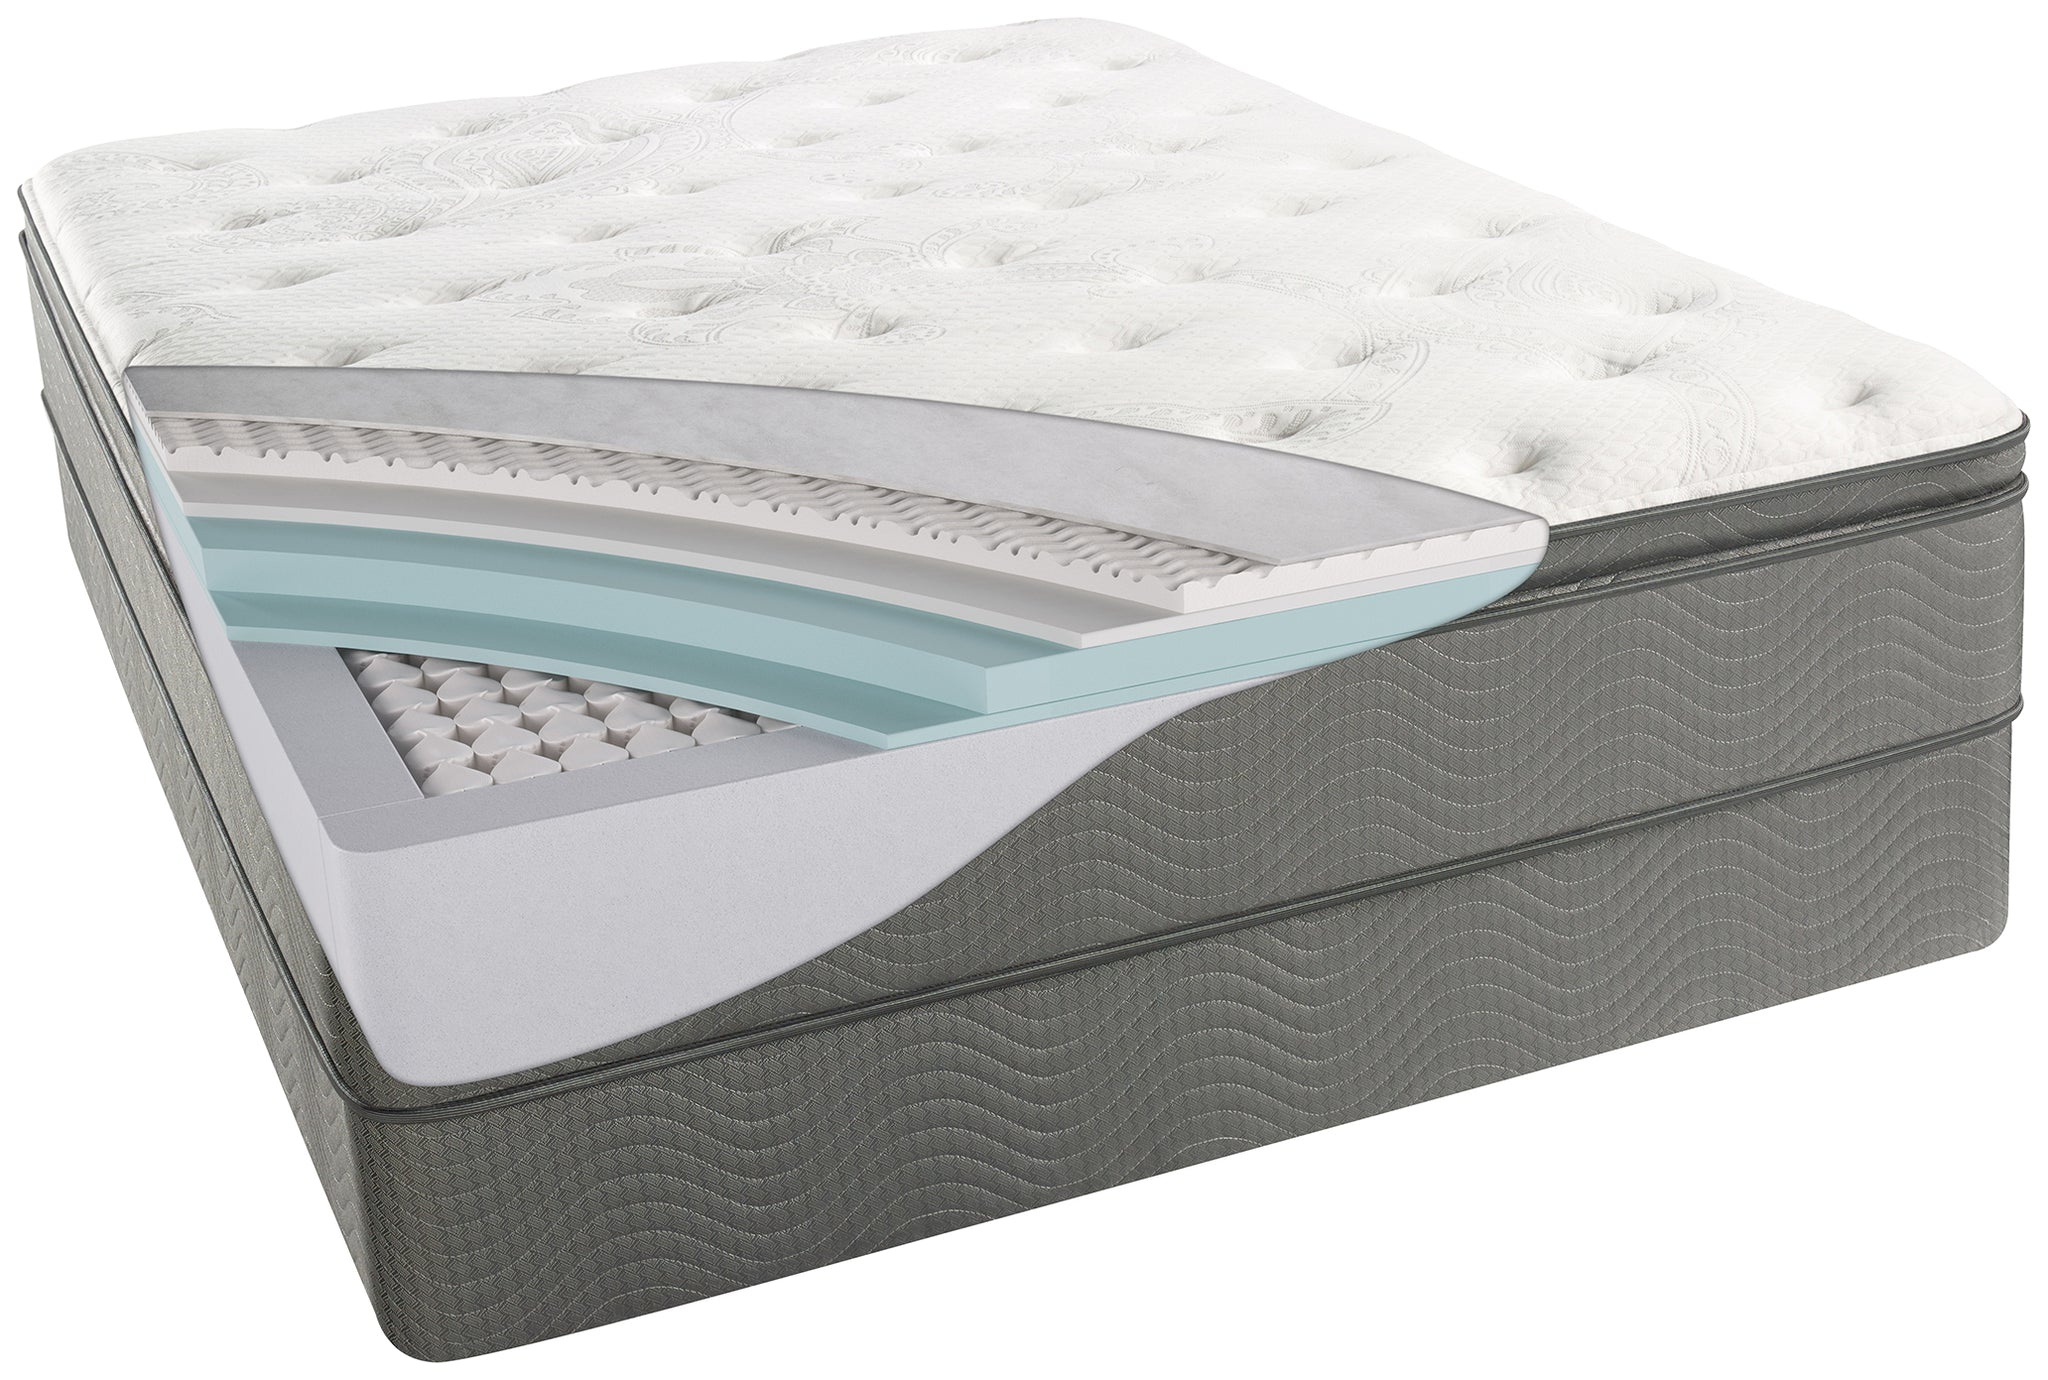 pad organic full topper double mattress pillow top size